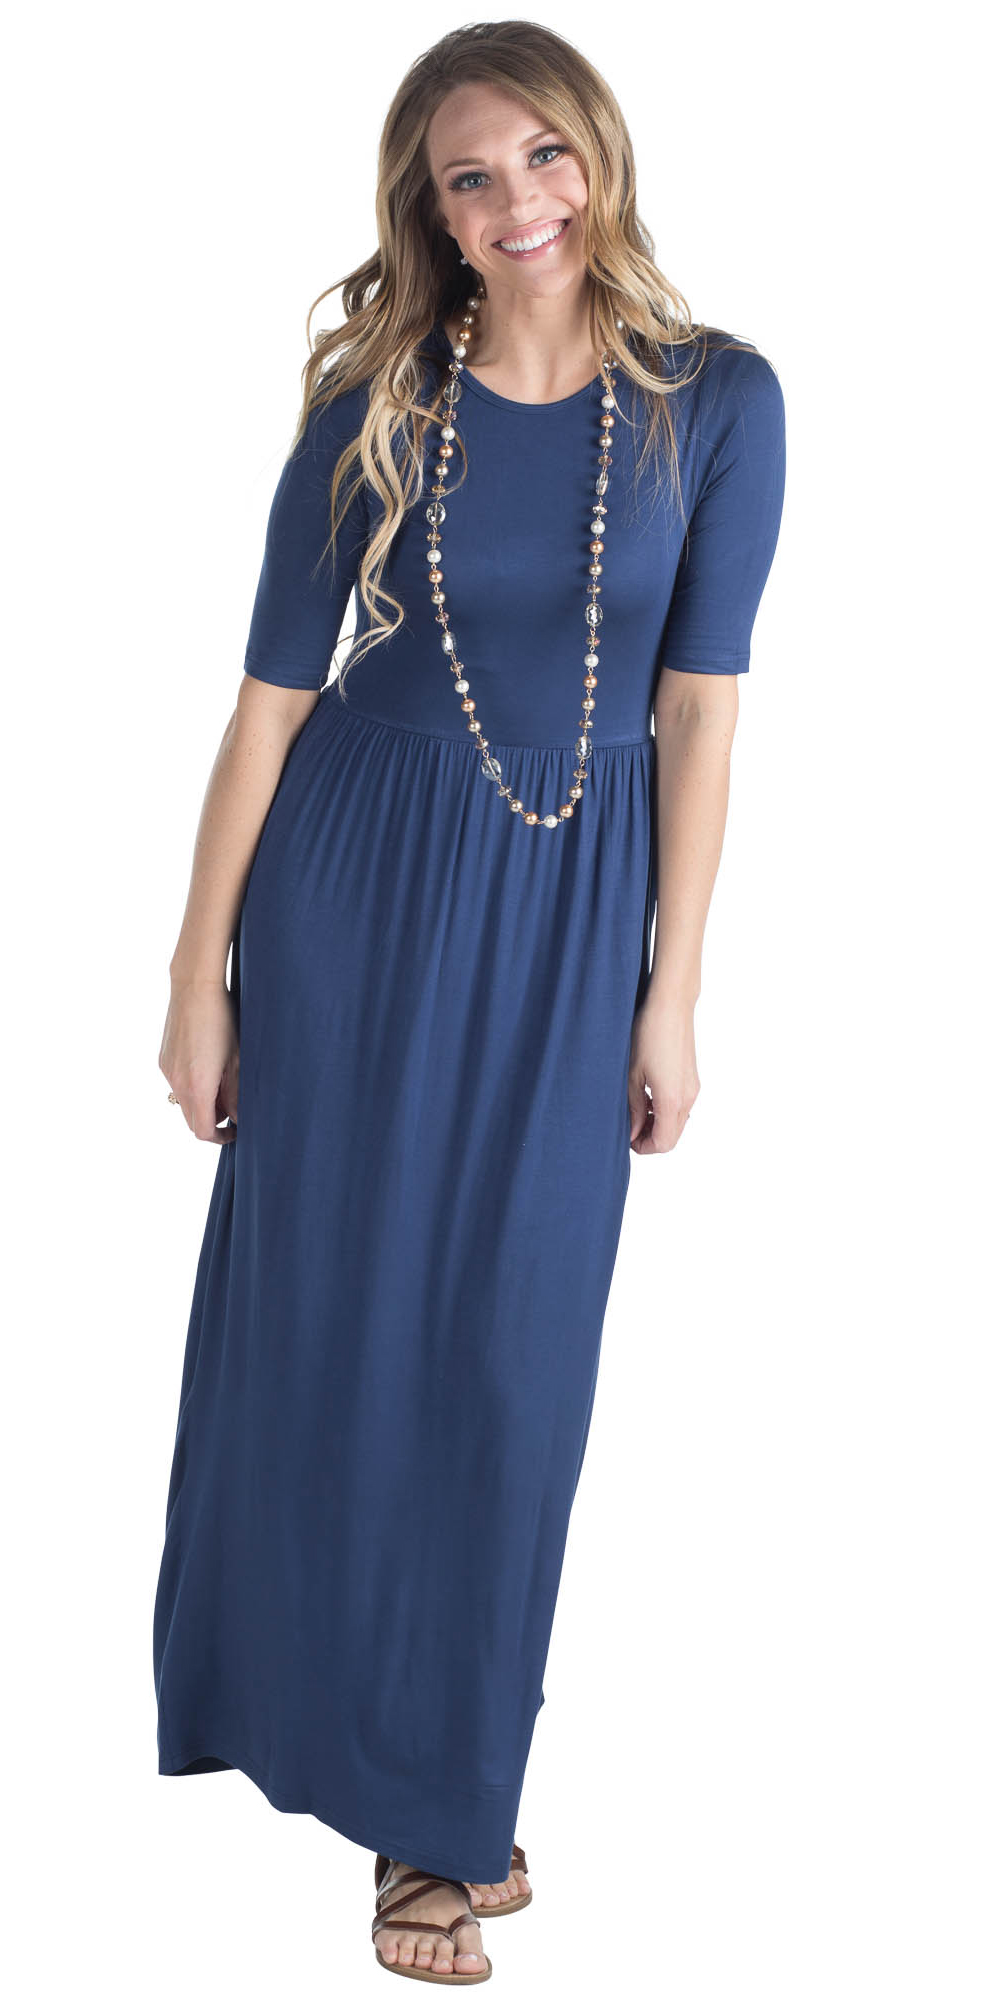 a7d2b2b19194 ... Jen Modest Maxi Dress with Half Sleeves in Navy Blue